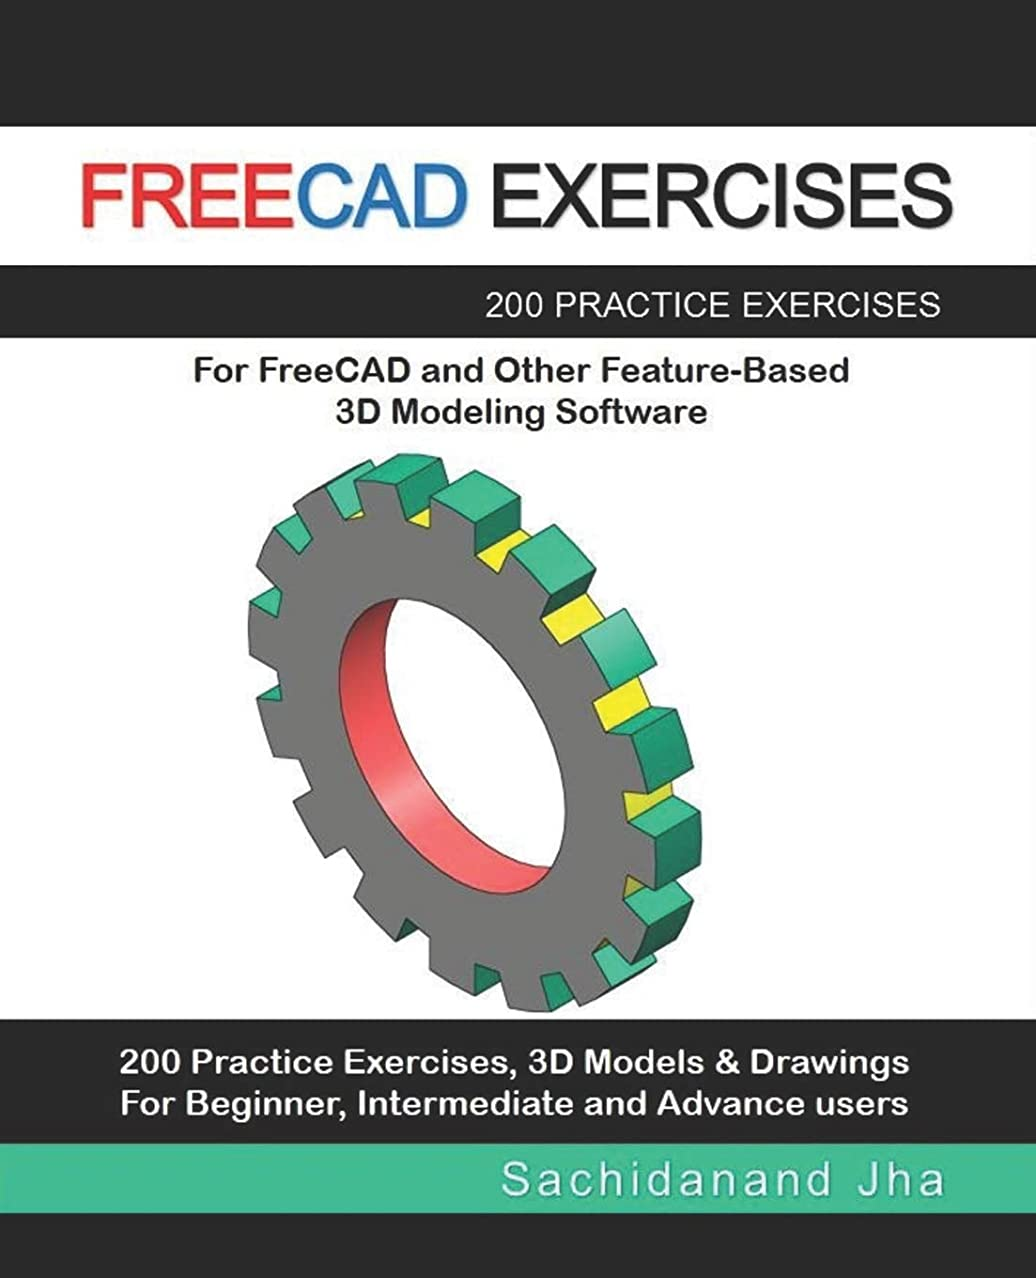 ディーラープライバシー大胆なFREECAD EXERCISES: 200 Practice Exercises For FreeCAD and Other Feature-Based 3D Modeling Software